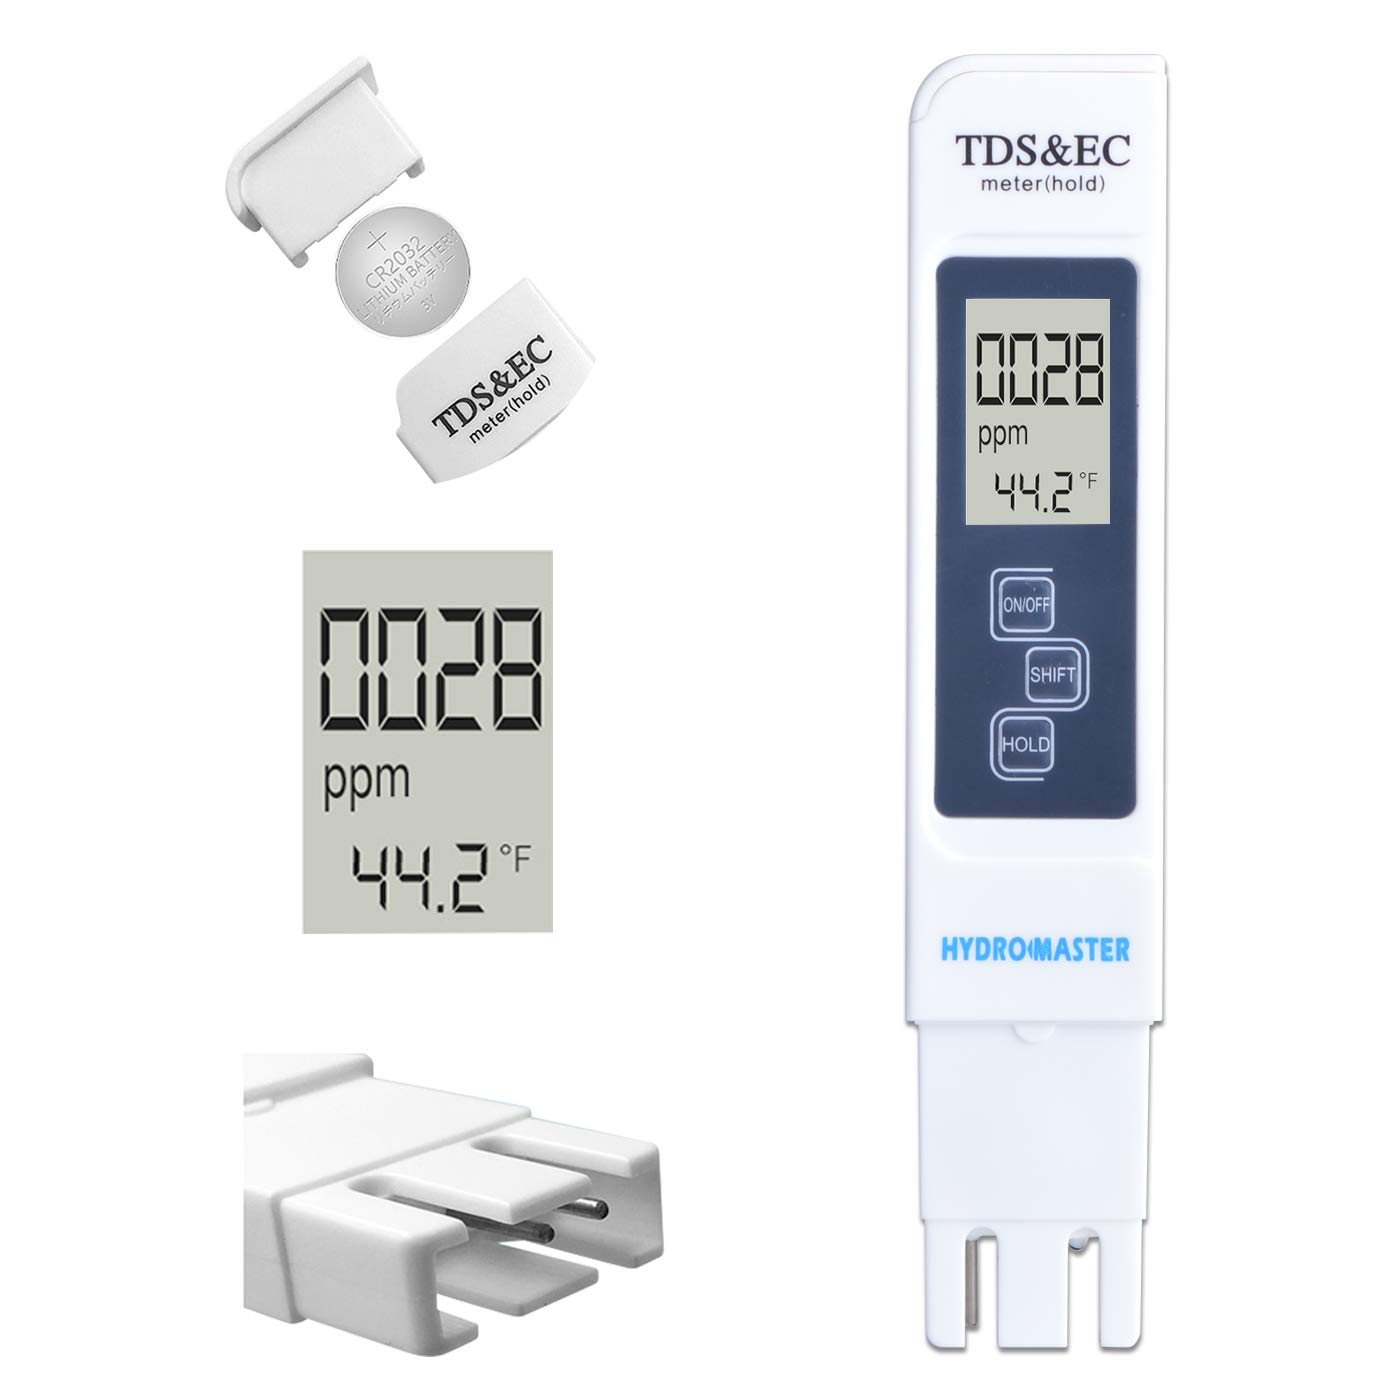 Hydro Master TDS Meter Digital Water Tester in EC and Inexpensive 3 New Shipping Free 1